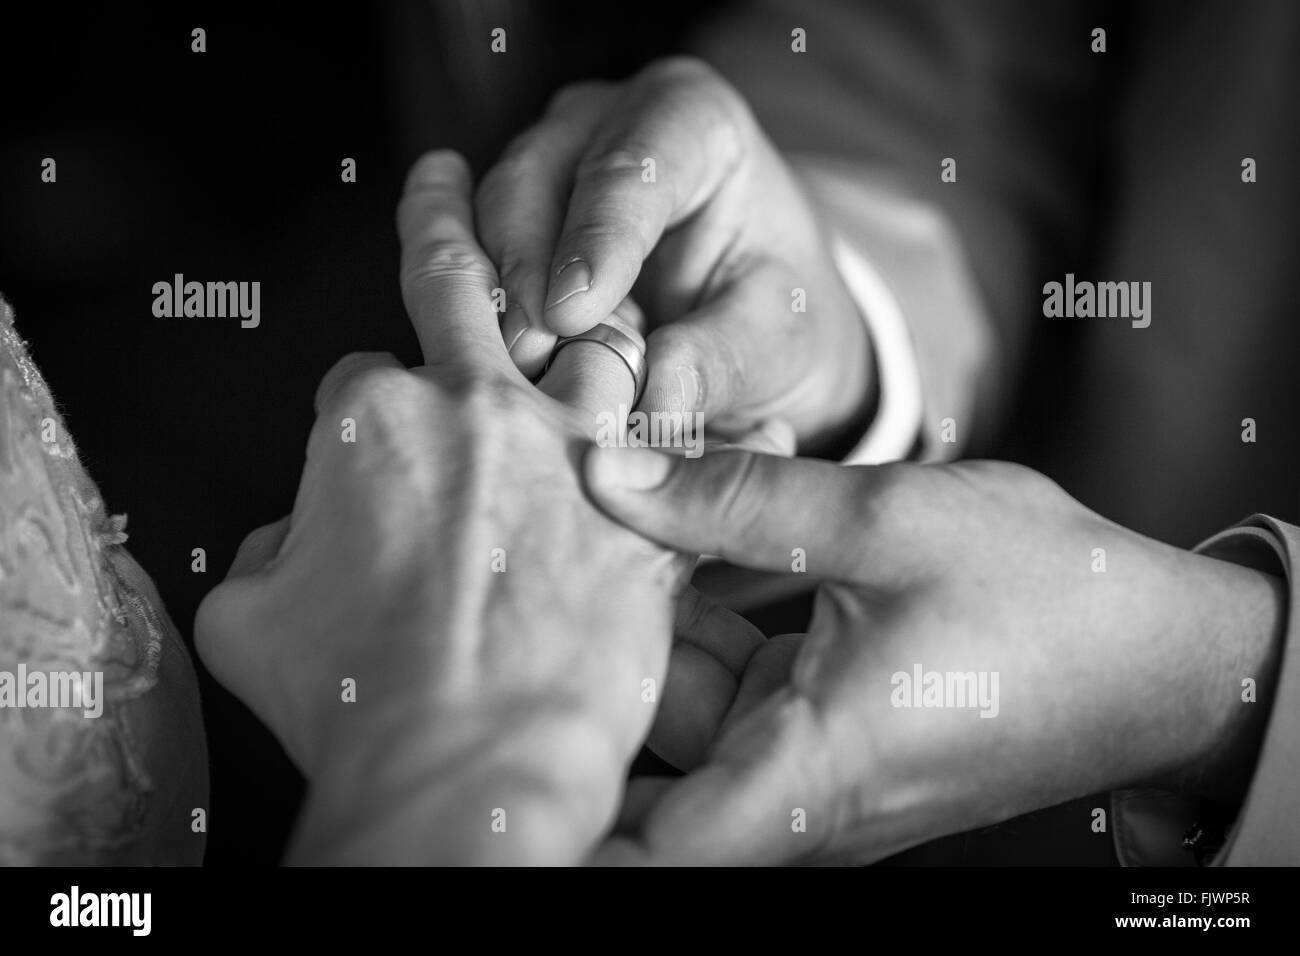 Midsection Of Man Wearing Ring With Woman - Stock Image